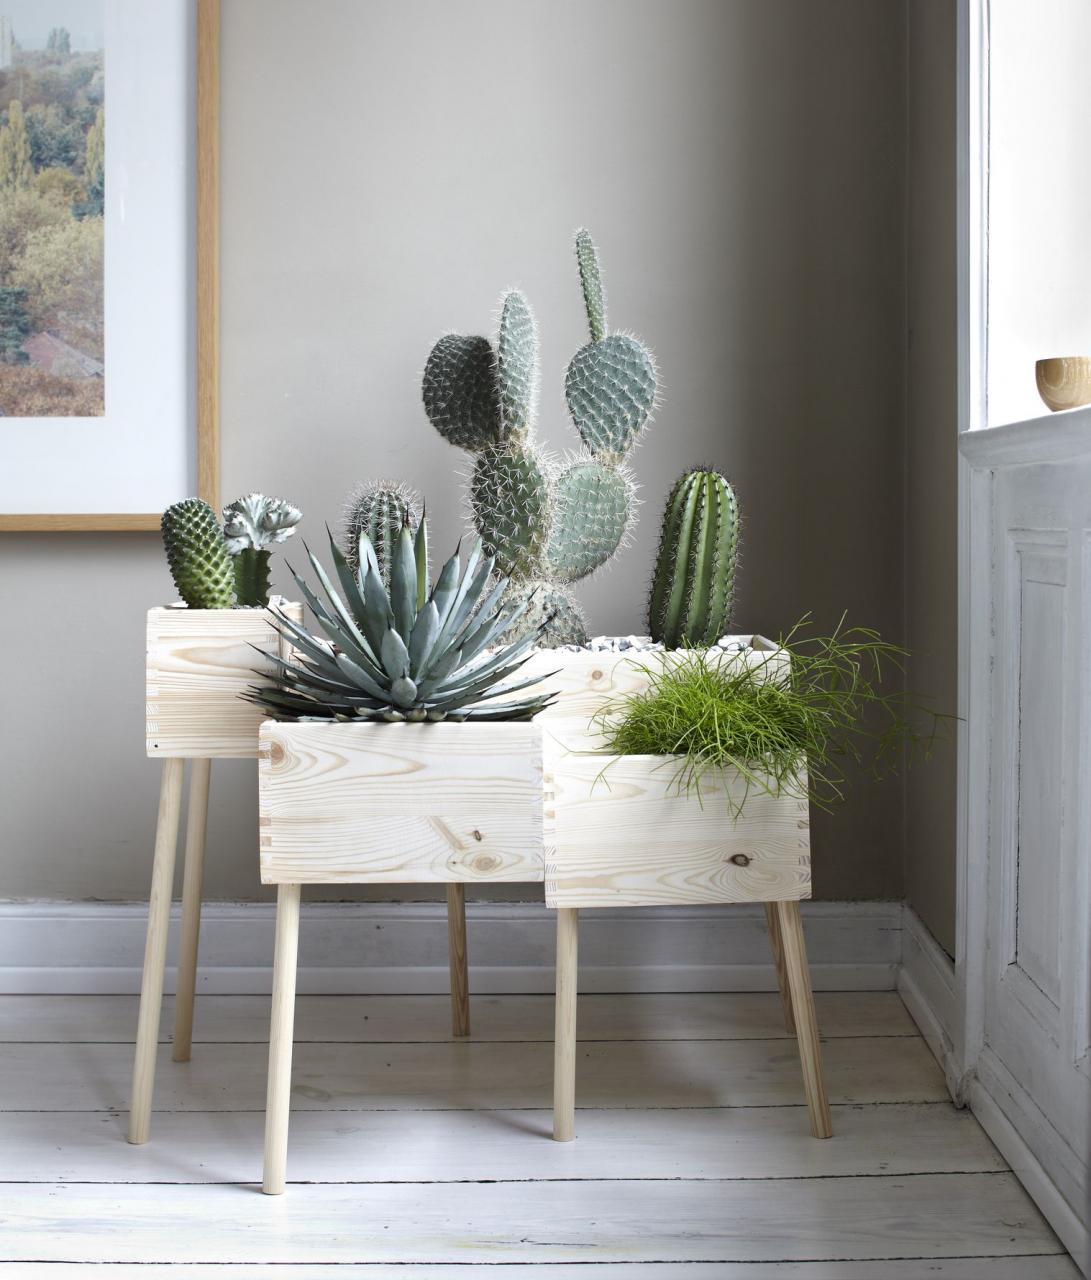 Cactus plants in room